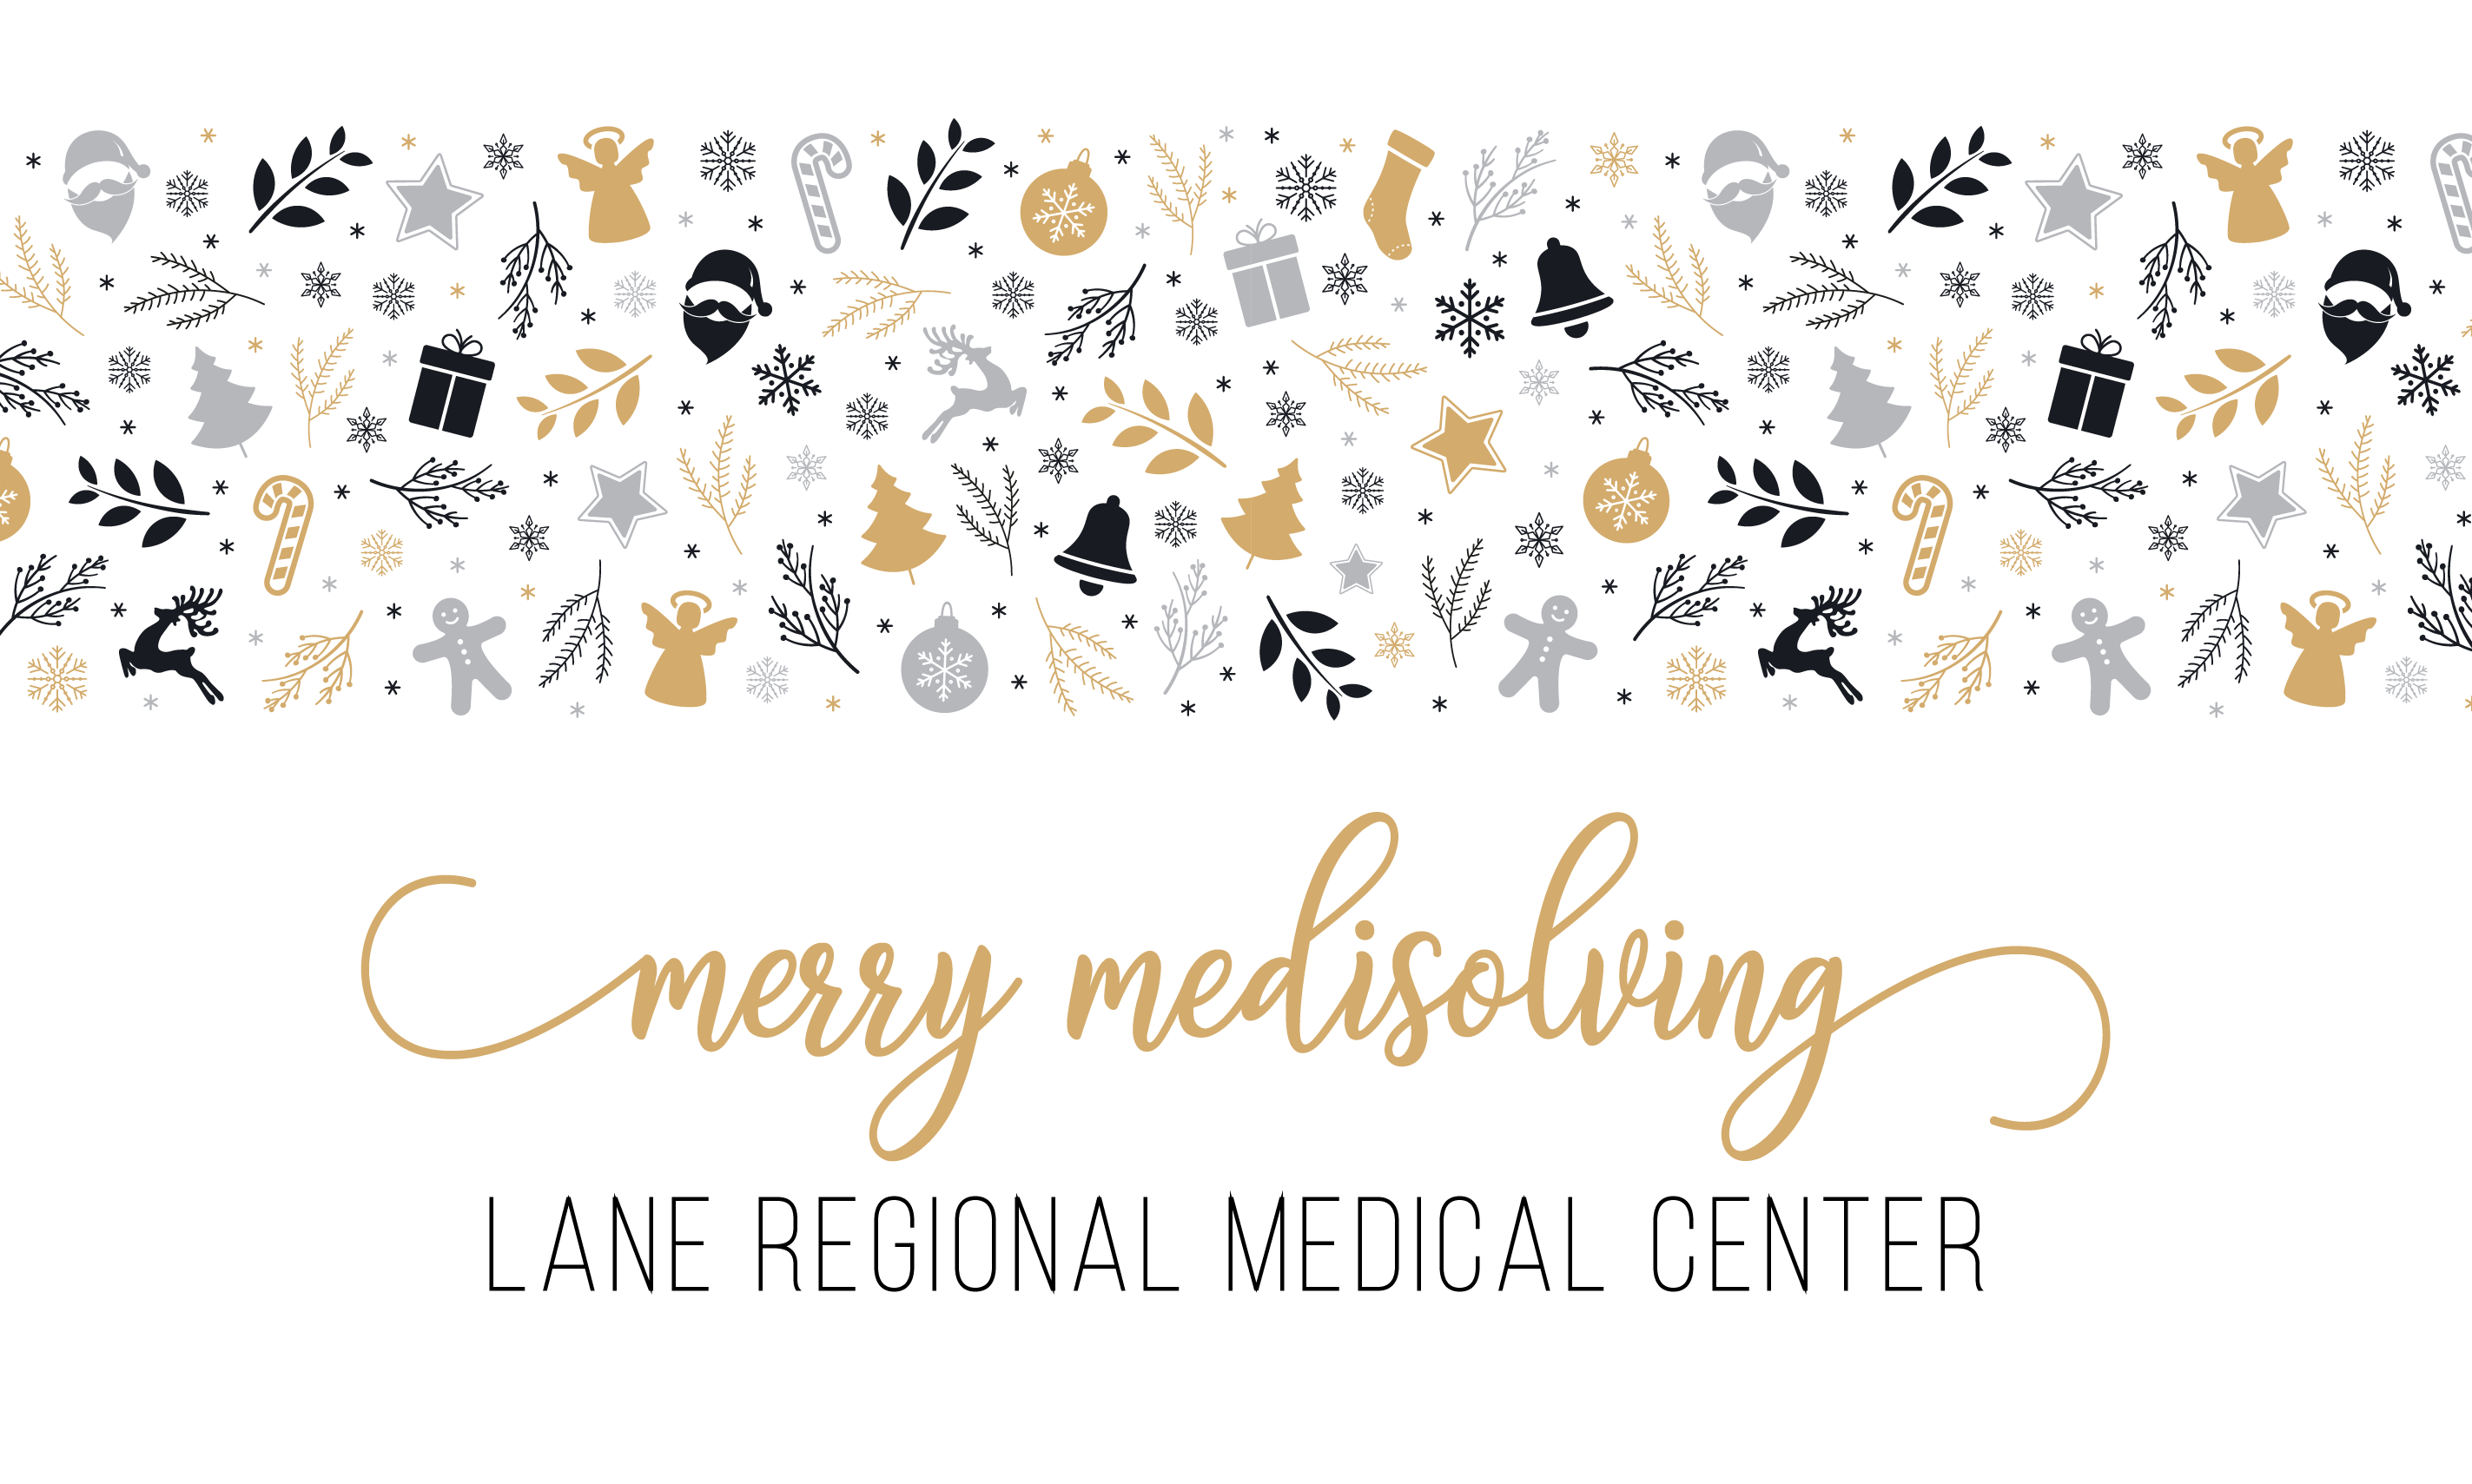 Merry Medisolving with with Lane Regional Medical Center